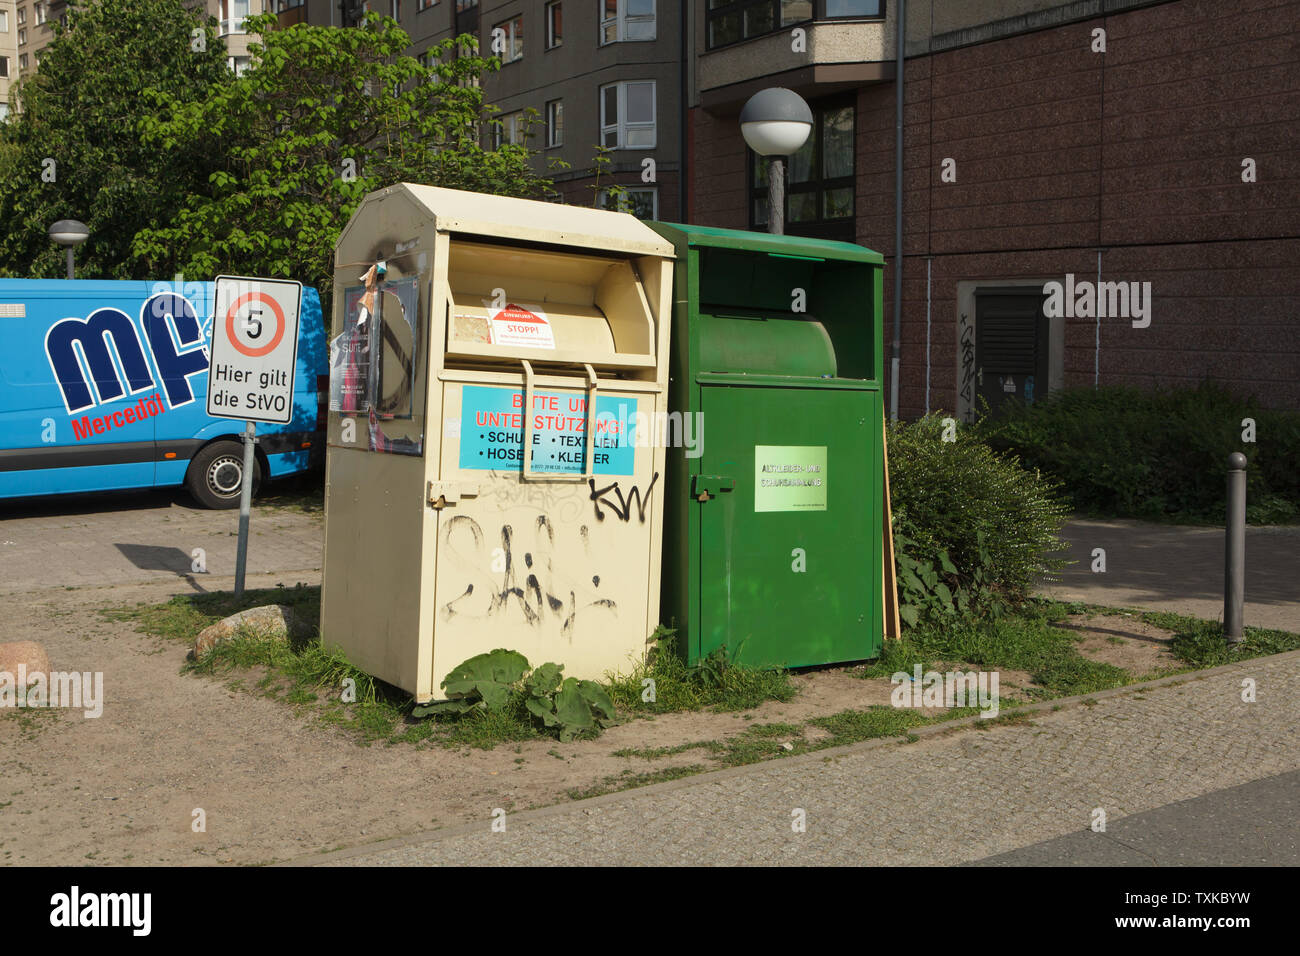 Two drop boxes for collection of used donated clothing and shoes approximately exactly on the place where Adolf Hitler committed suicide in the Führerbunker in the garden of the Reich Chancellery (Reichskanzlei), now in Gertrud-Kolmar-Straße in Berlin, Germany. Adolf Hitler and Eva Braun committed suicide in the Führerbunker on 30 April 1945. Stock Photo